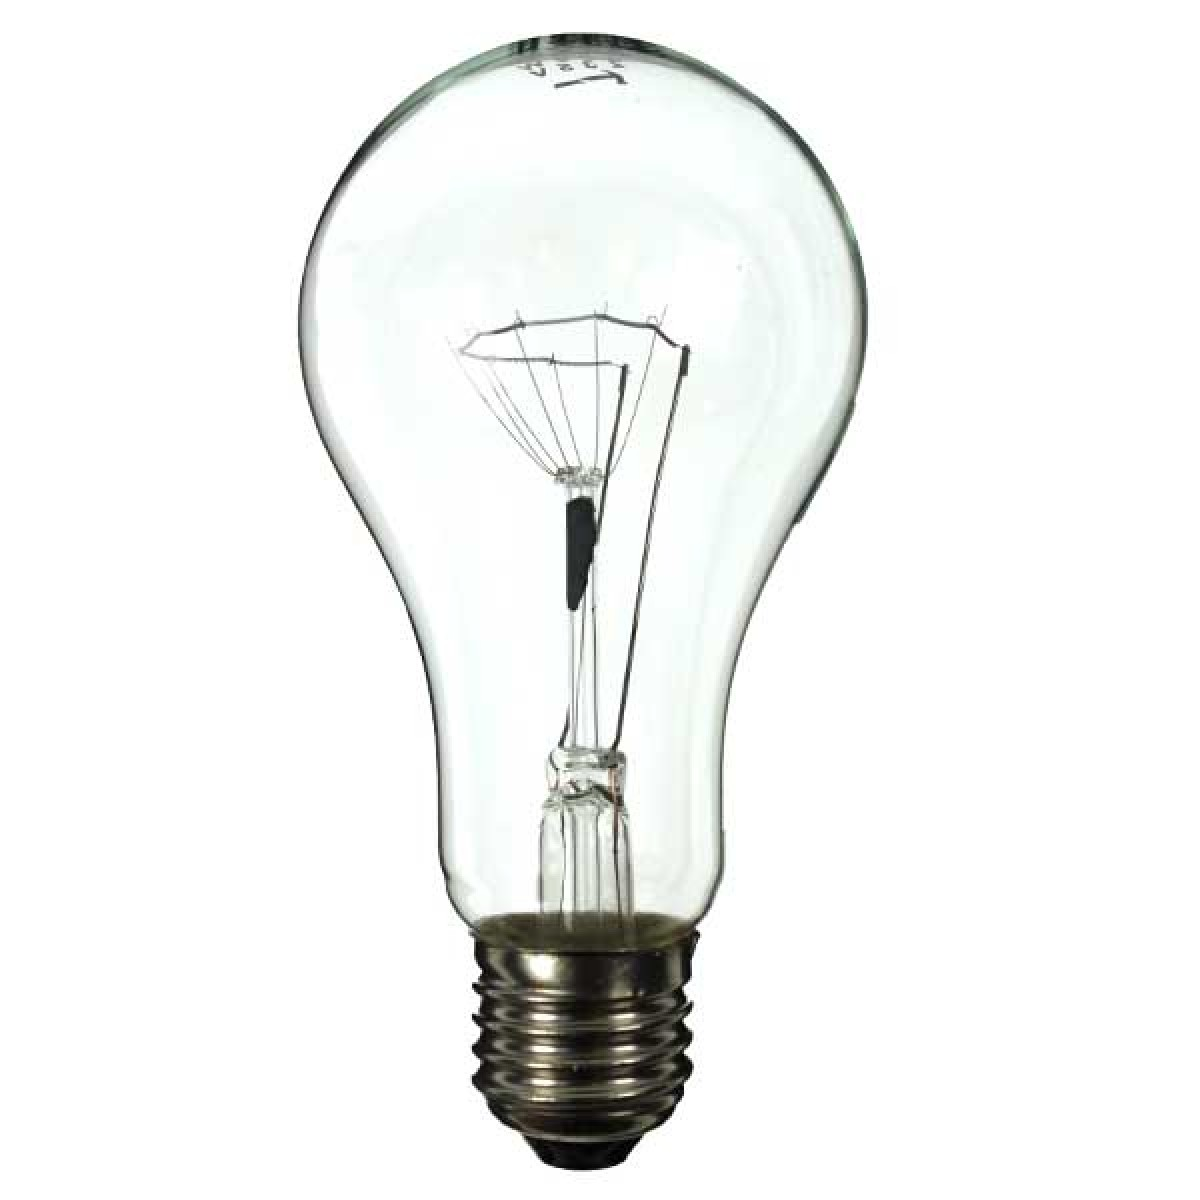 Gls Light Bulb 110v 200w E27 Clear From General Lamps